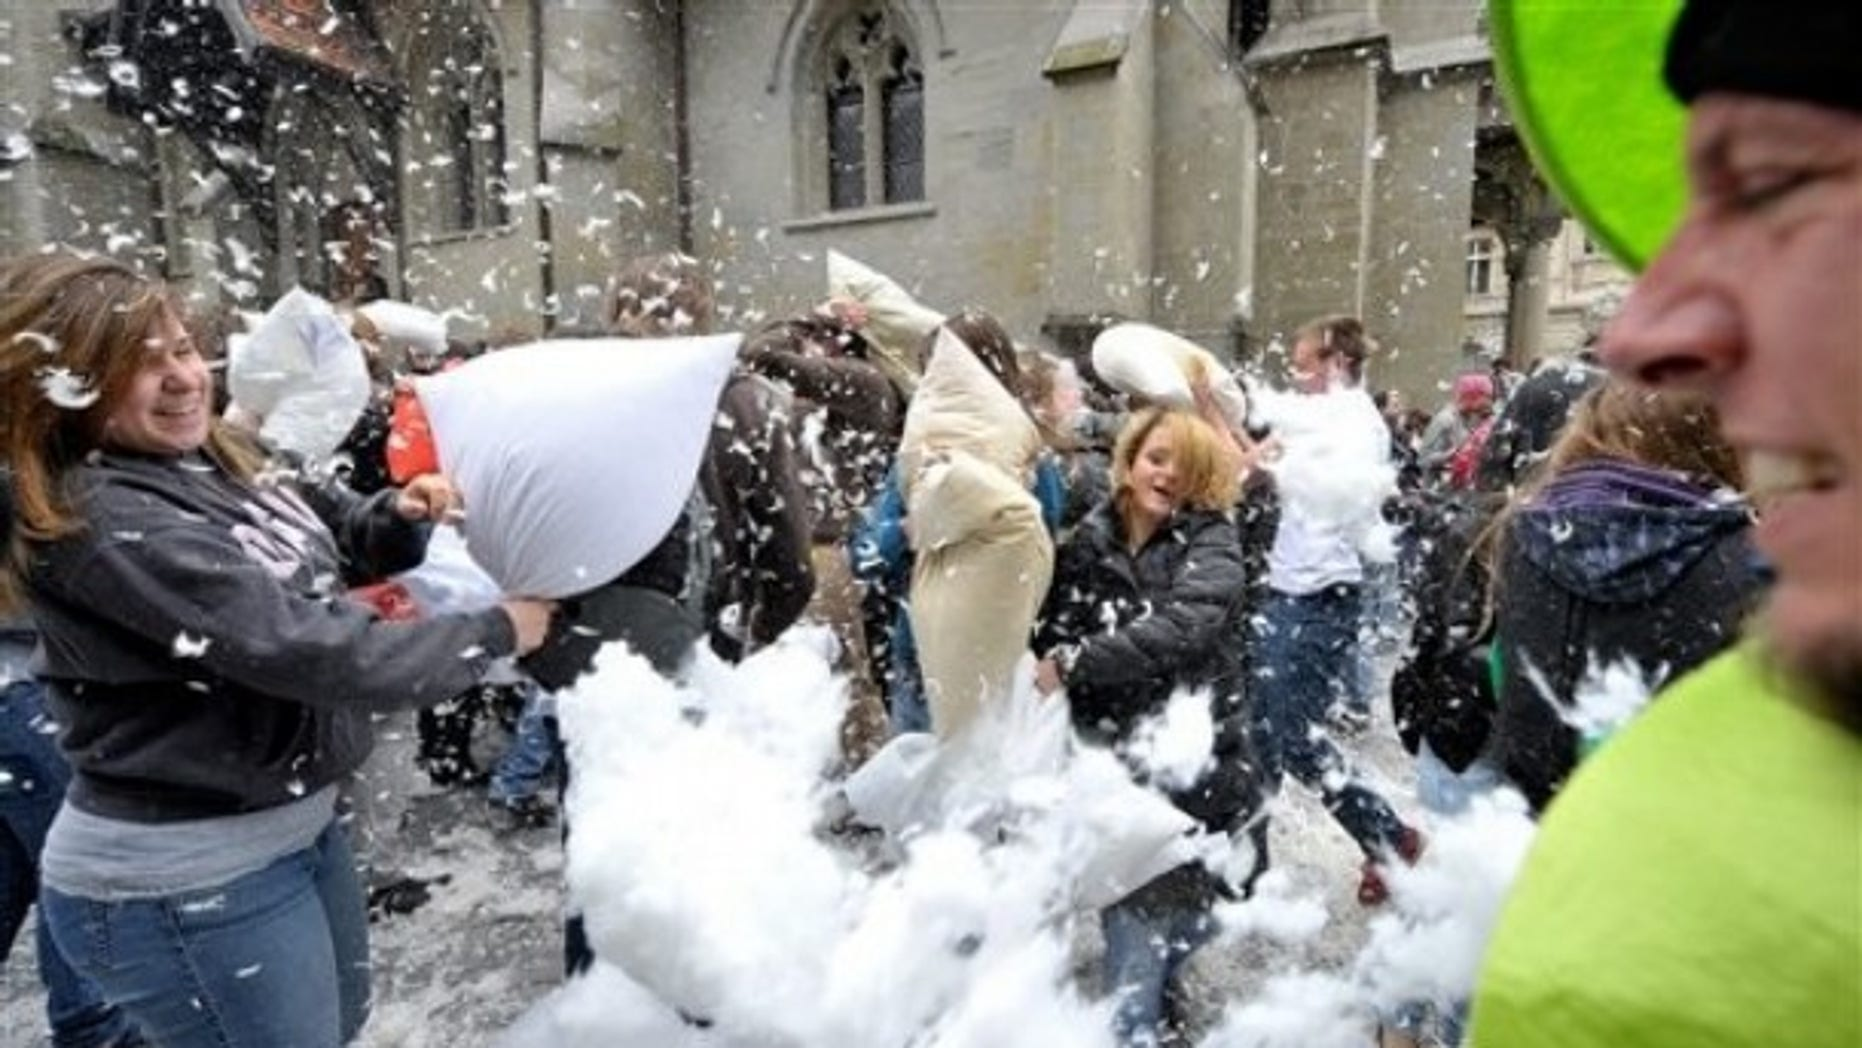 Young poeple take part in an organized pillow fight in Lausanne, Switzerland.